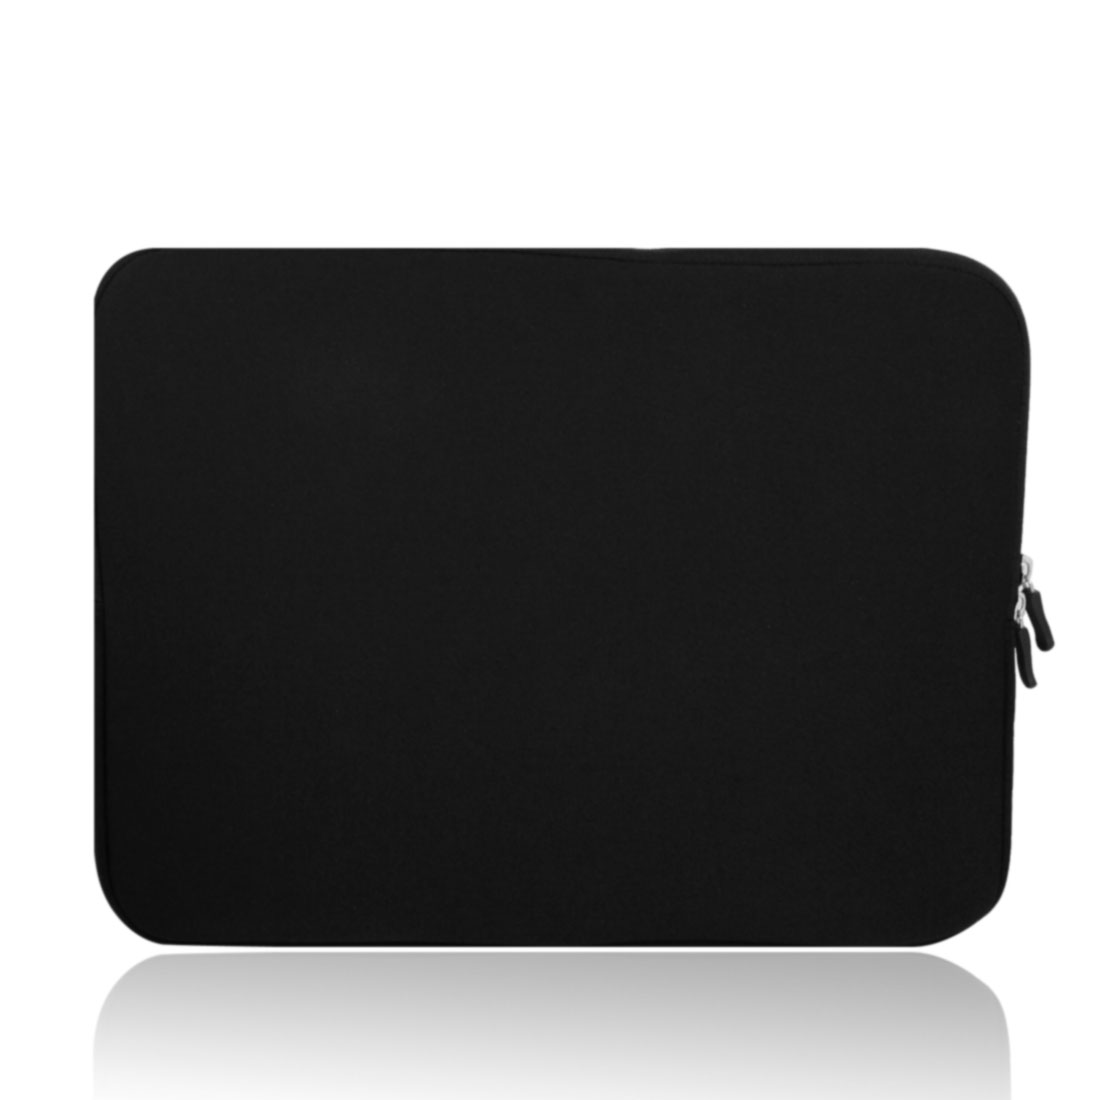 "12.5"" 12.8"" Black Neoprene Notebook Laptop Sleeve Bag Case"